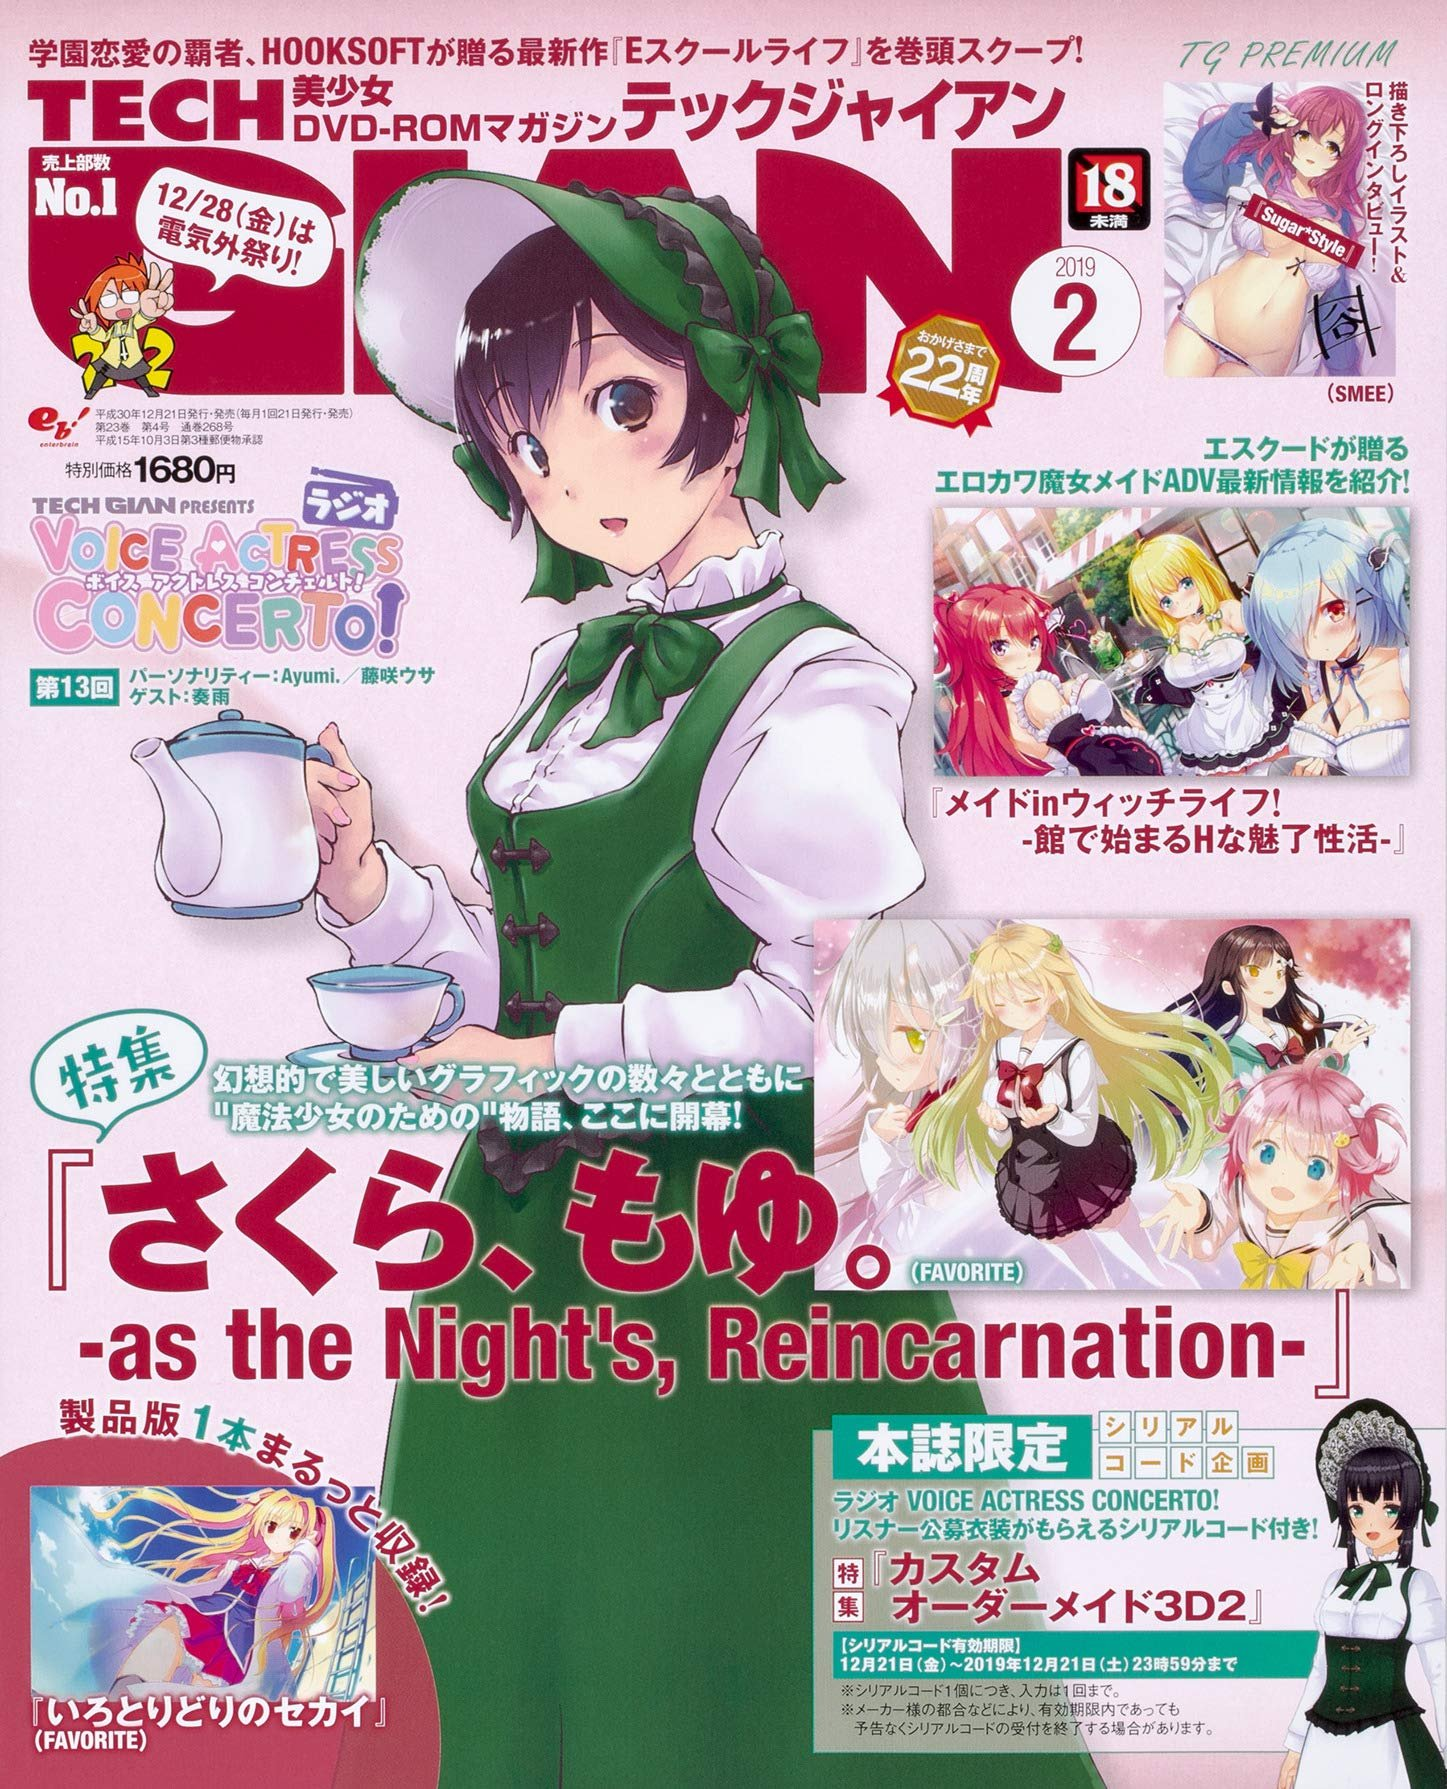 Tech Gian Issue 268 (February 2019)